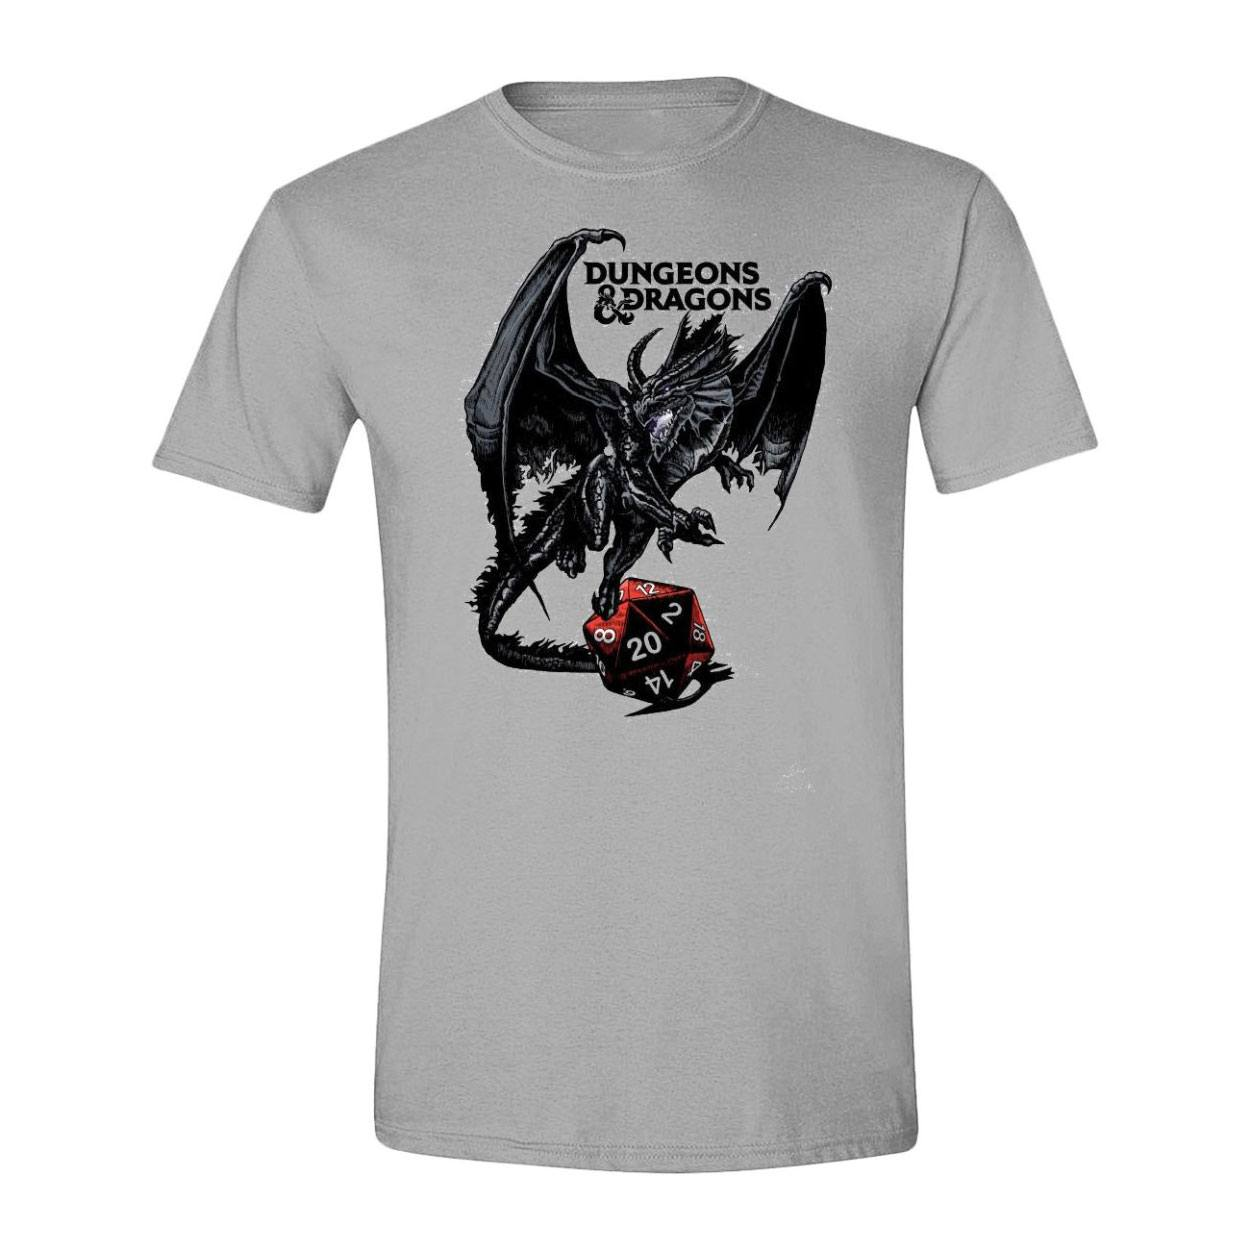 Dungeons & Dragons T-Shirt Dragon Logo Size L